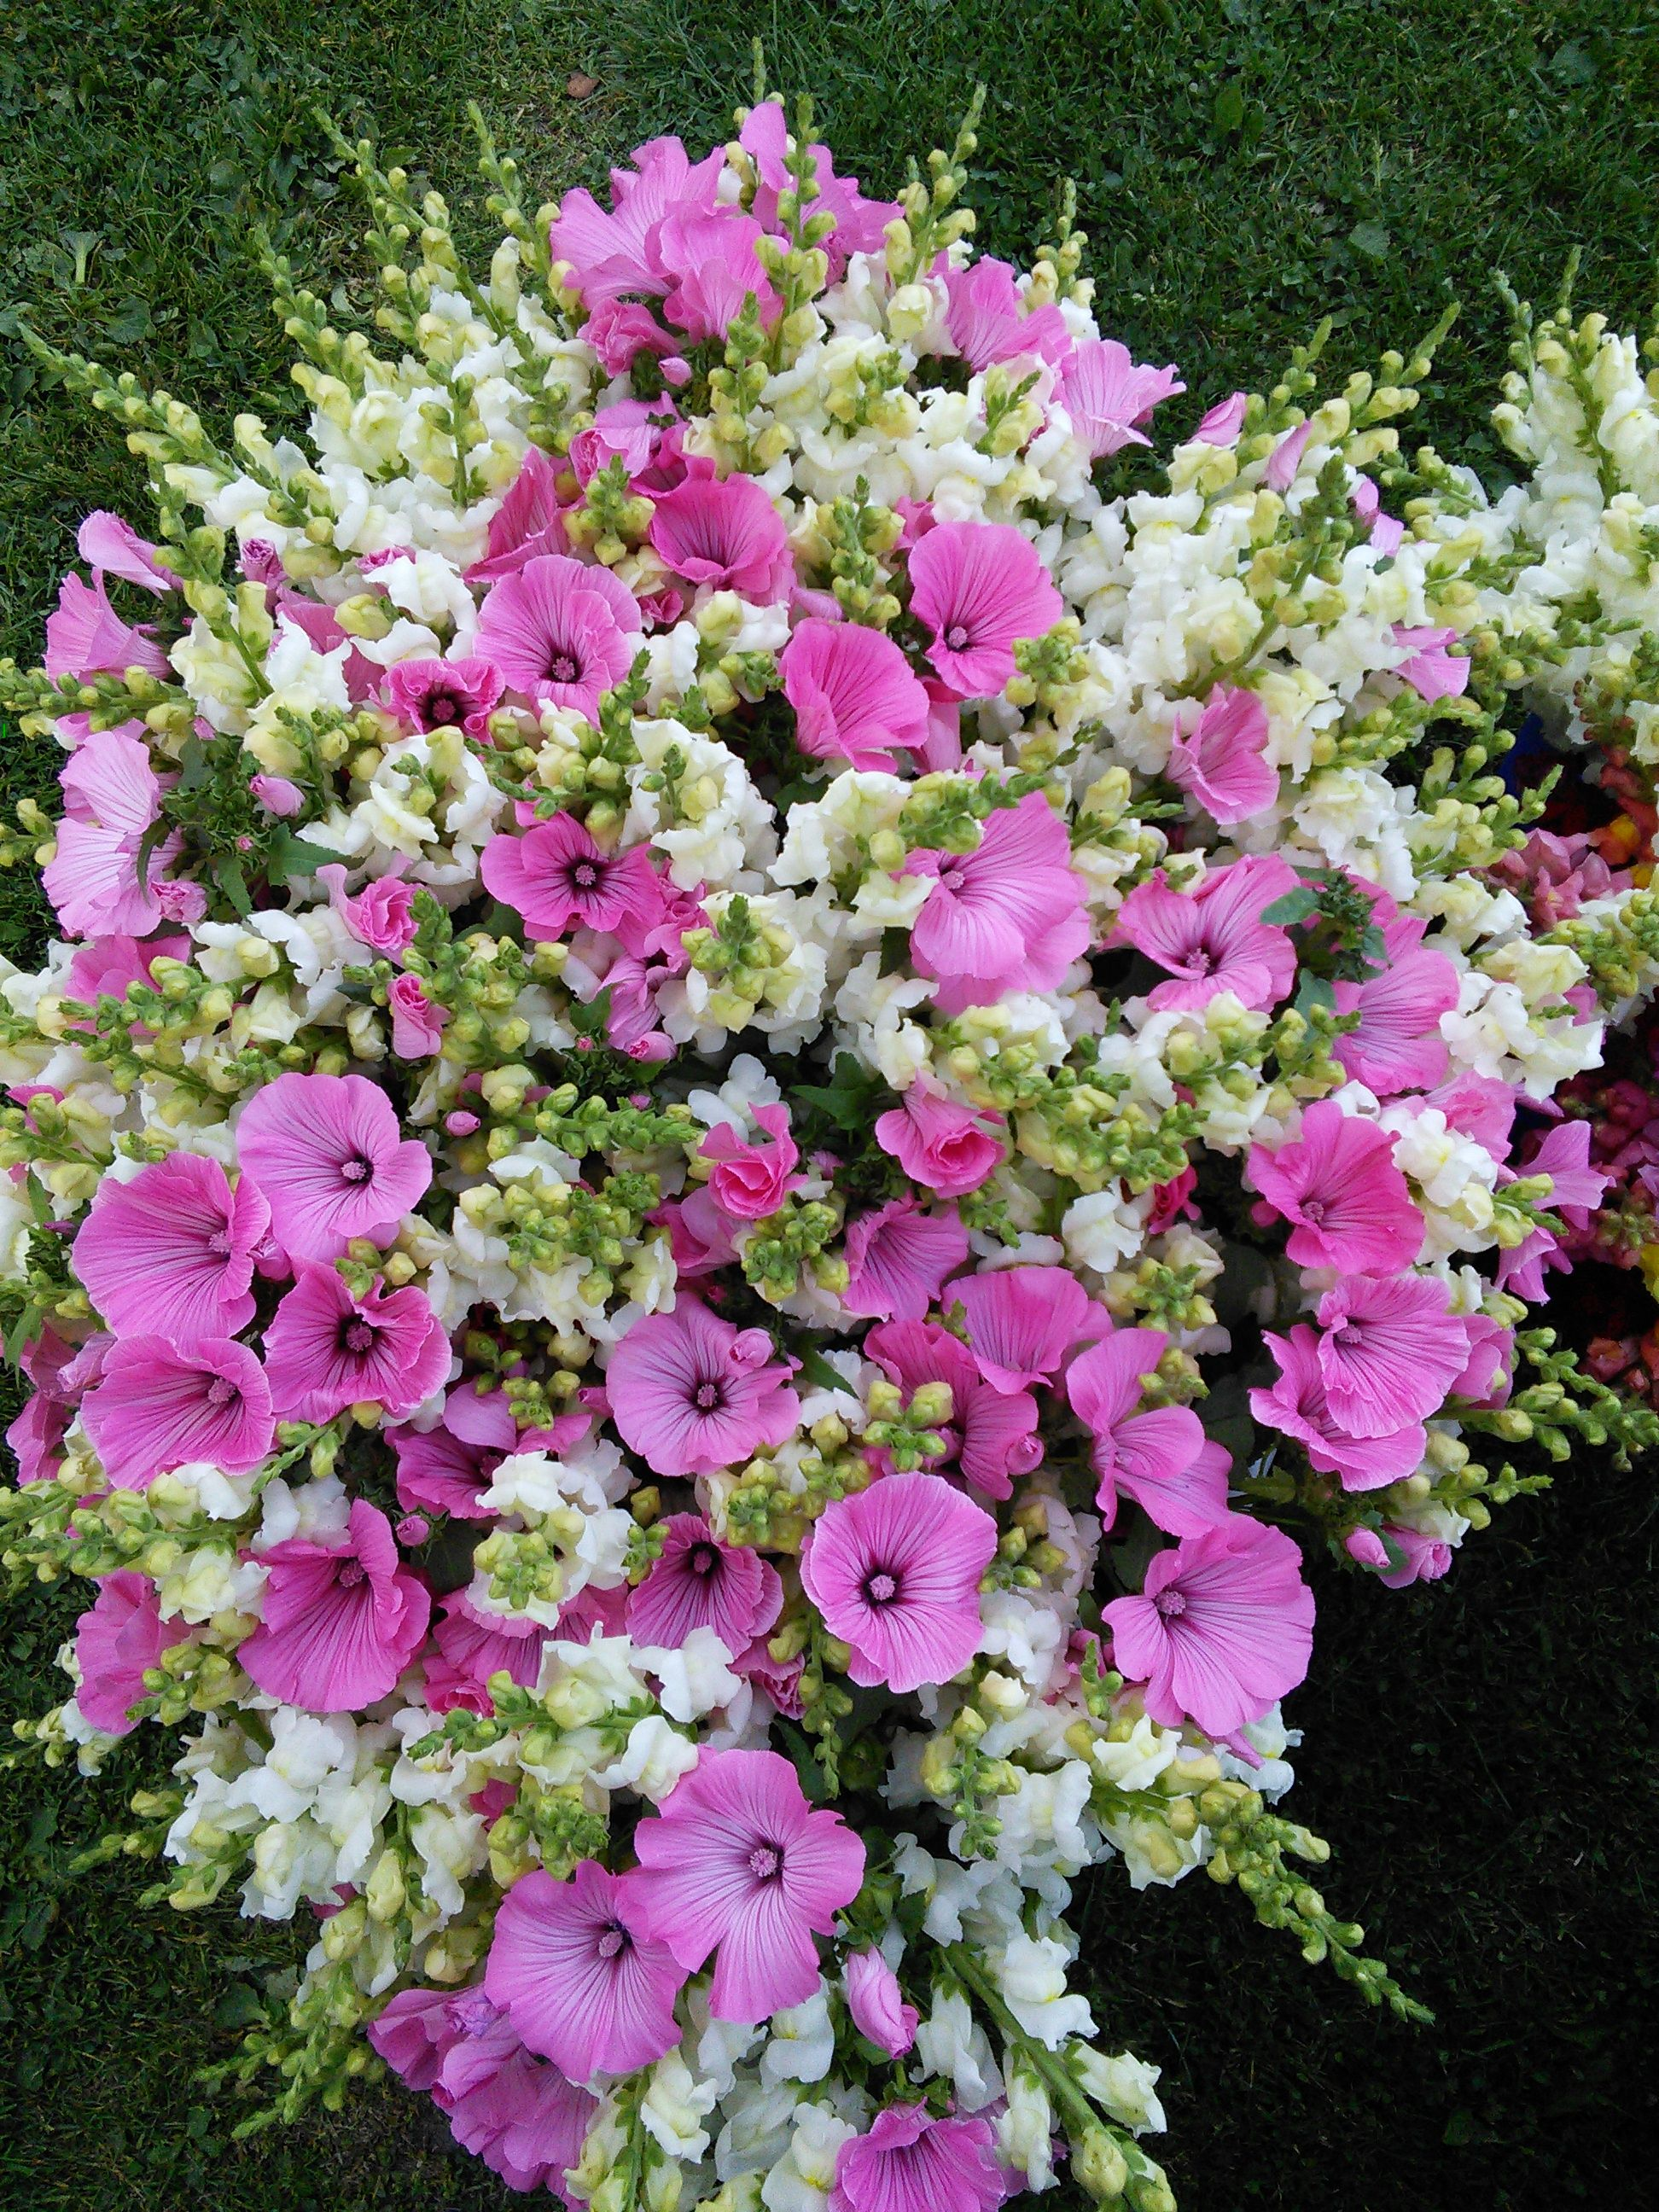 A bucket of Snapdragons and Malva